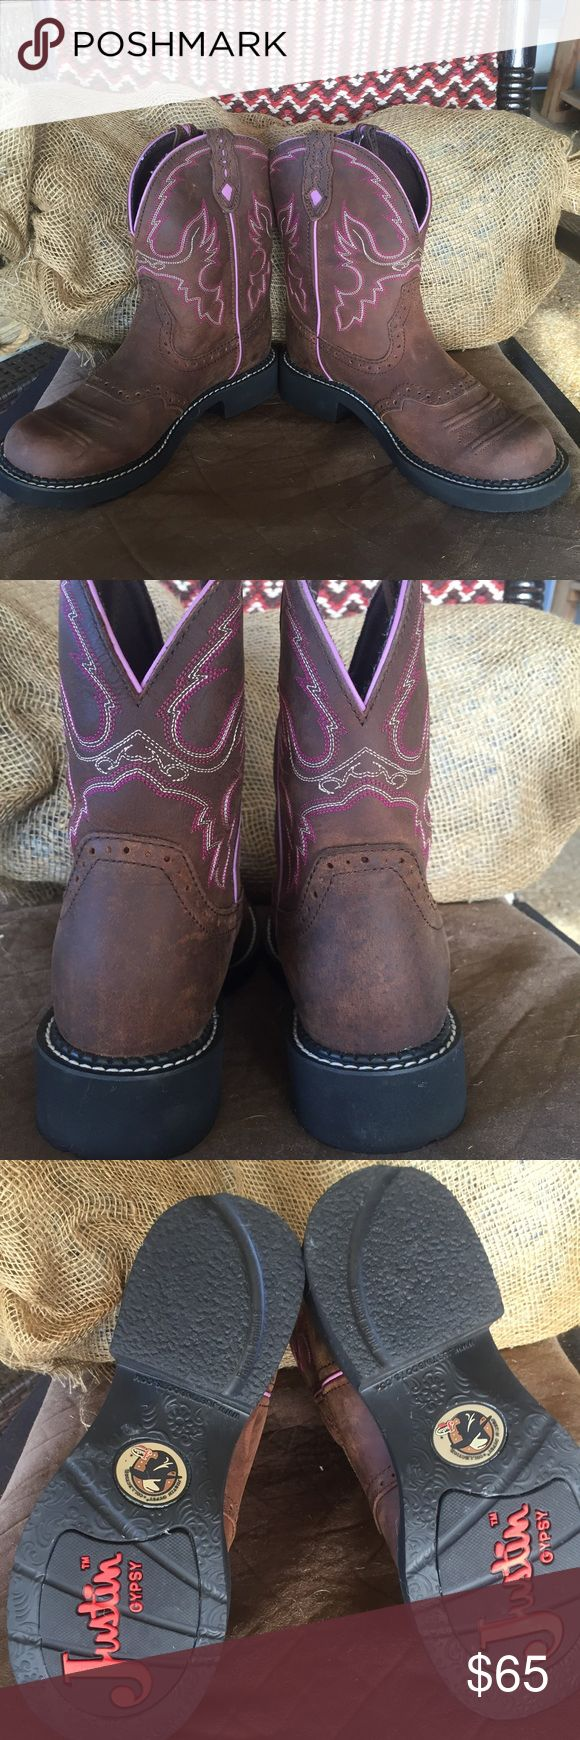 Justin gypsy boots Adorable brown, purple, and pink Justin boots!! Size 71/2 B. Worn once, like brand spankin new!! Justin Boots Shoes Ankle Boots & Booties